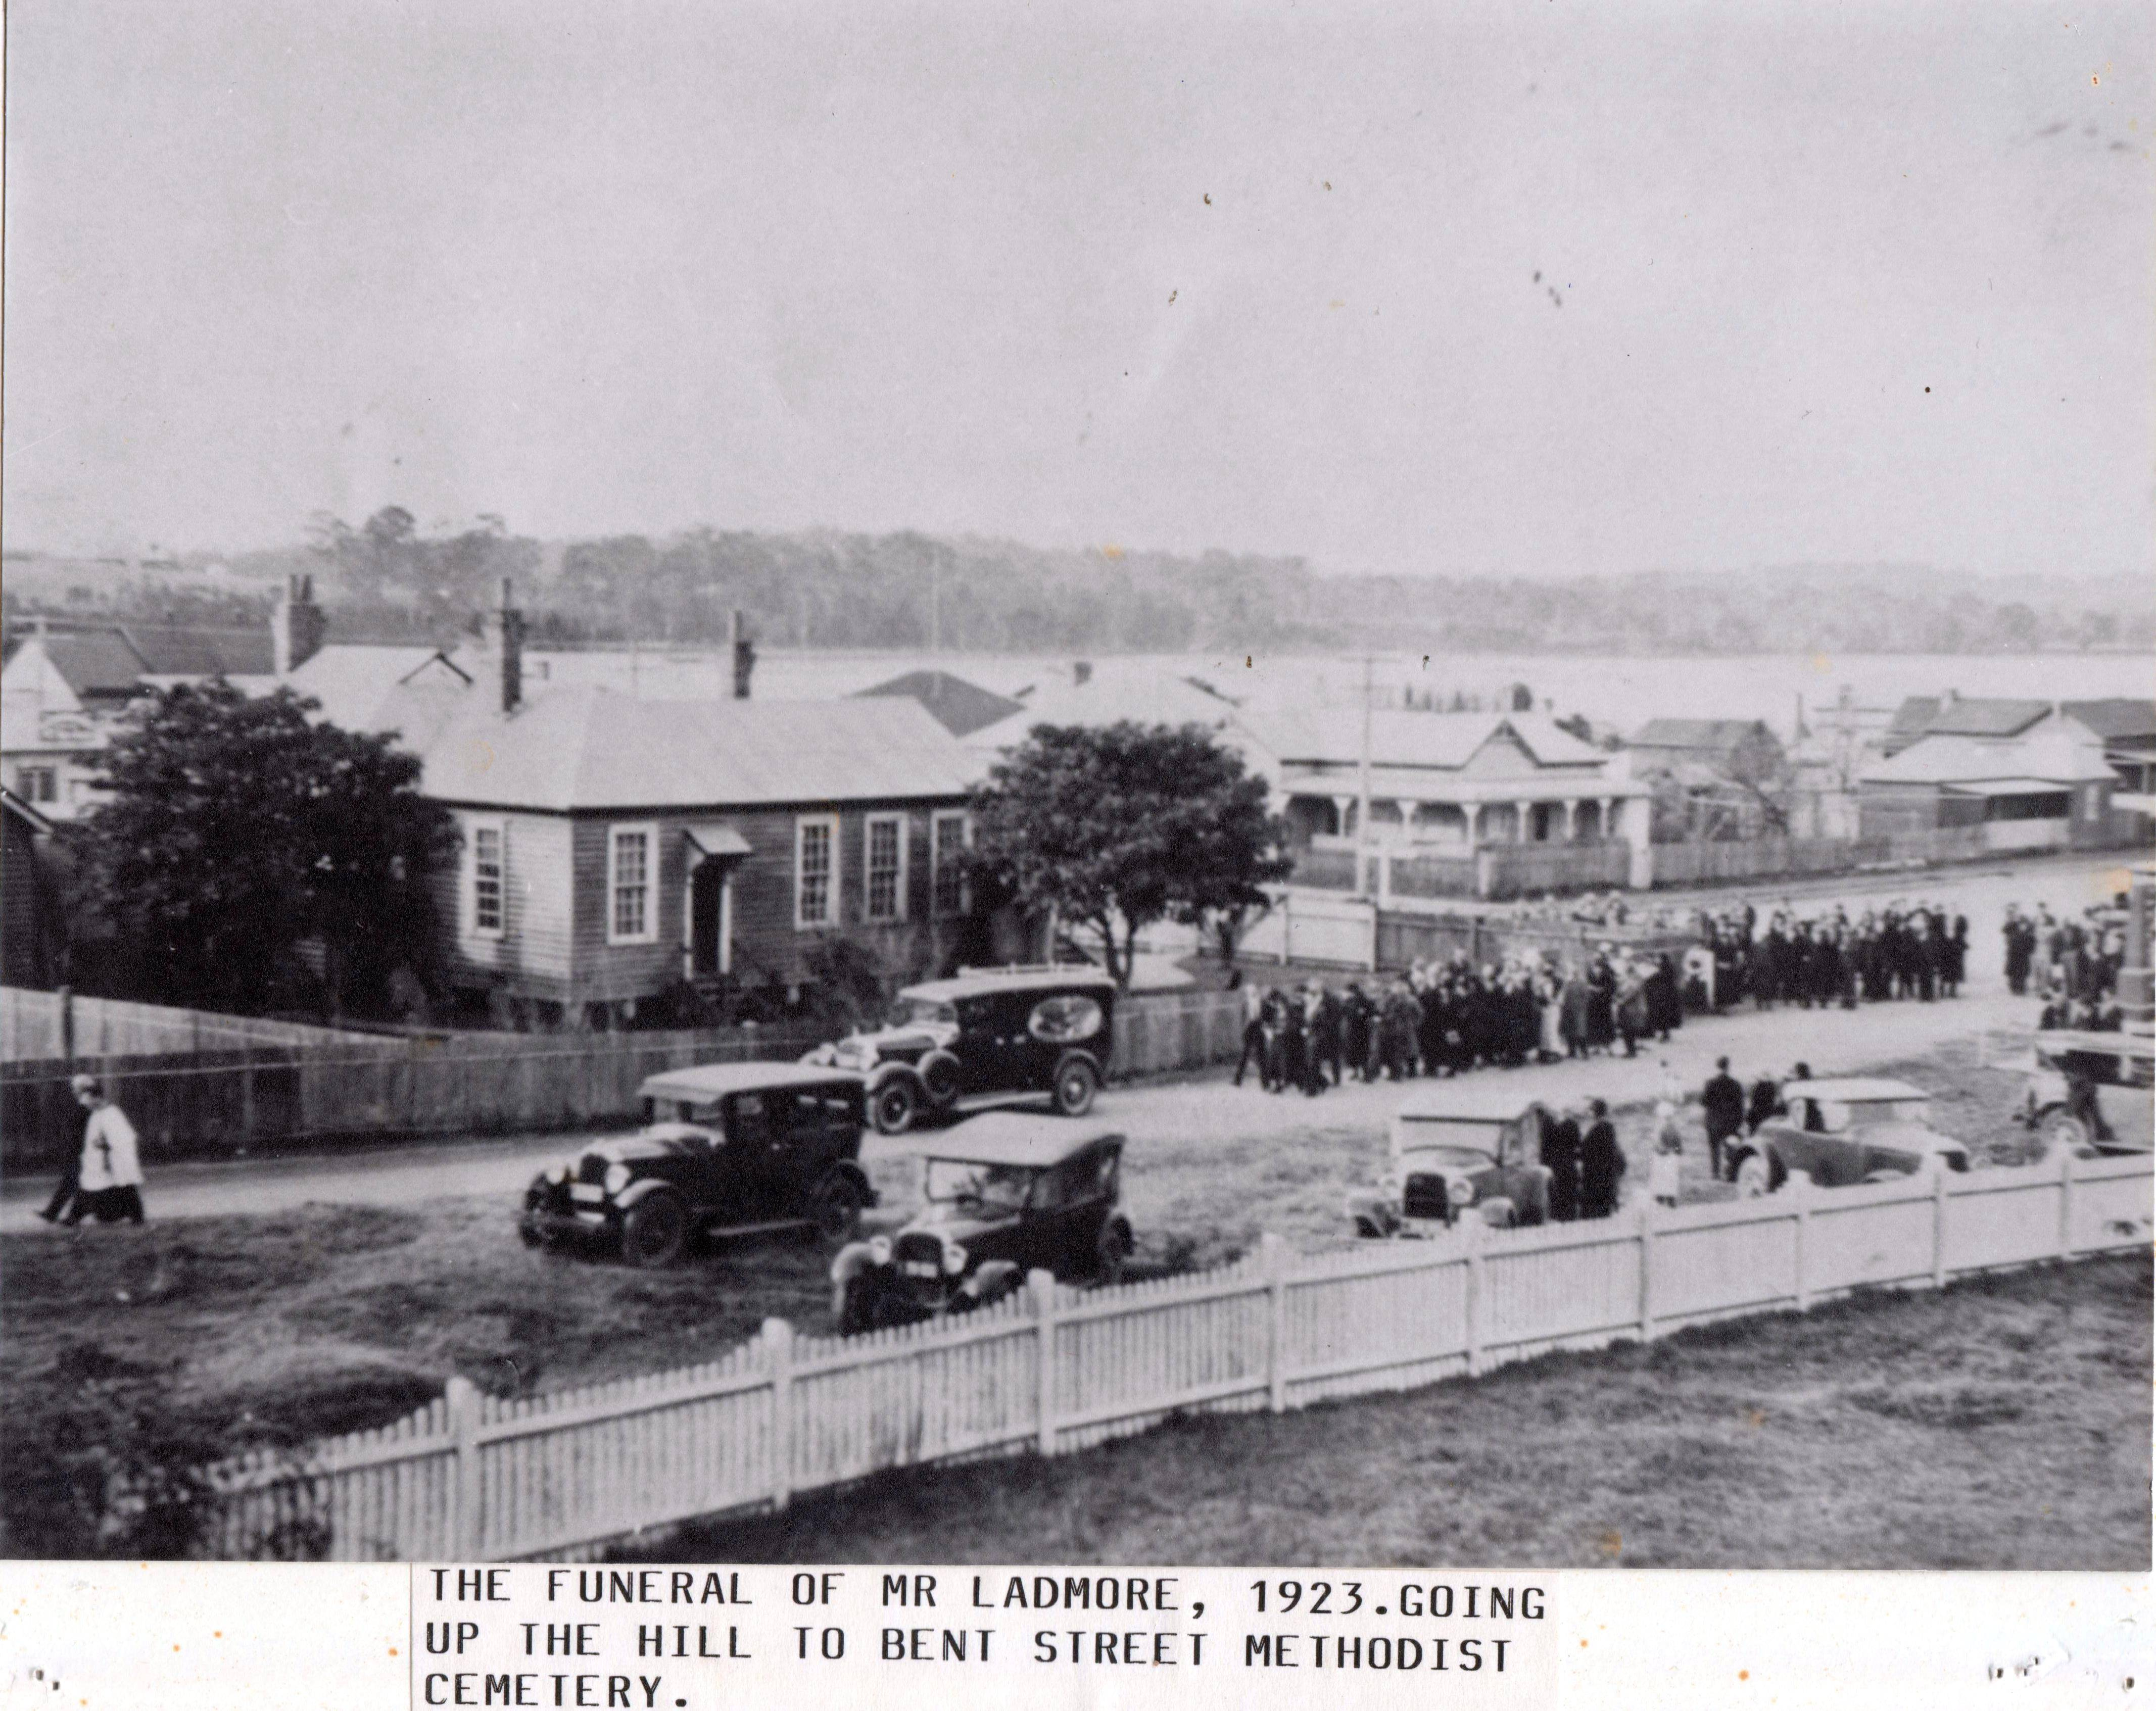 Mr. Ladmore's Funeral, 1923